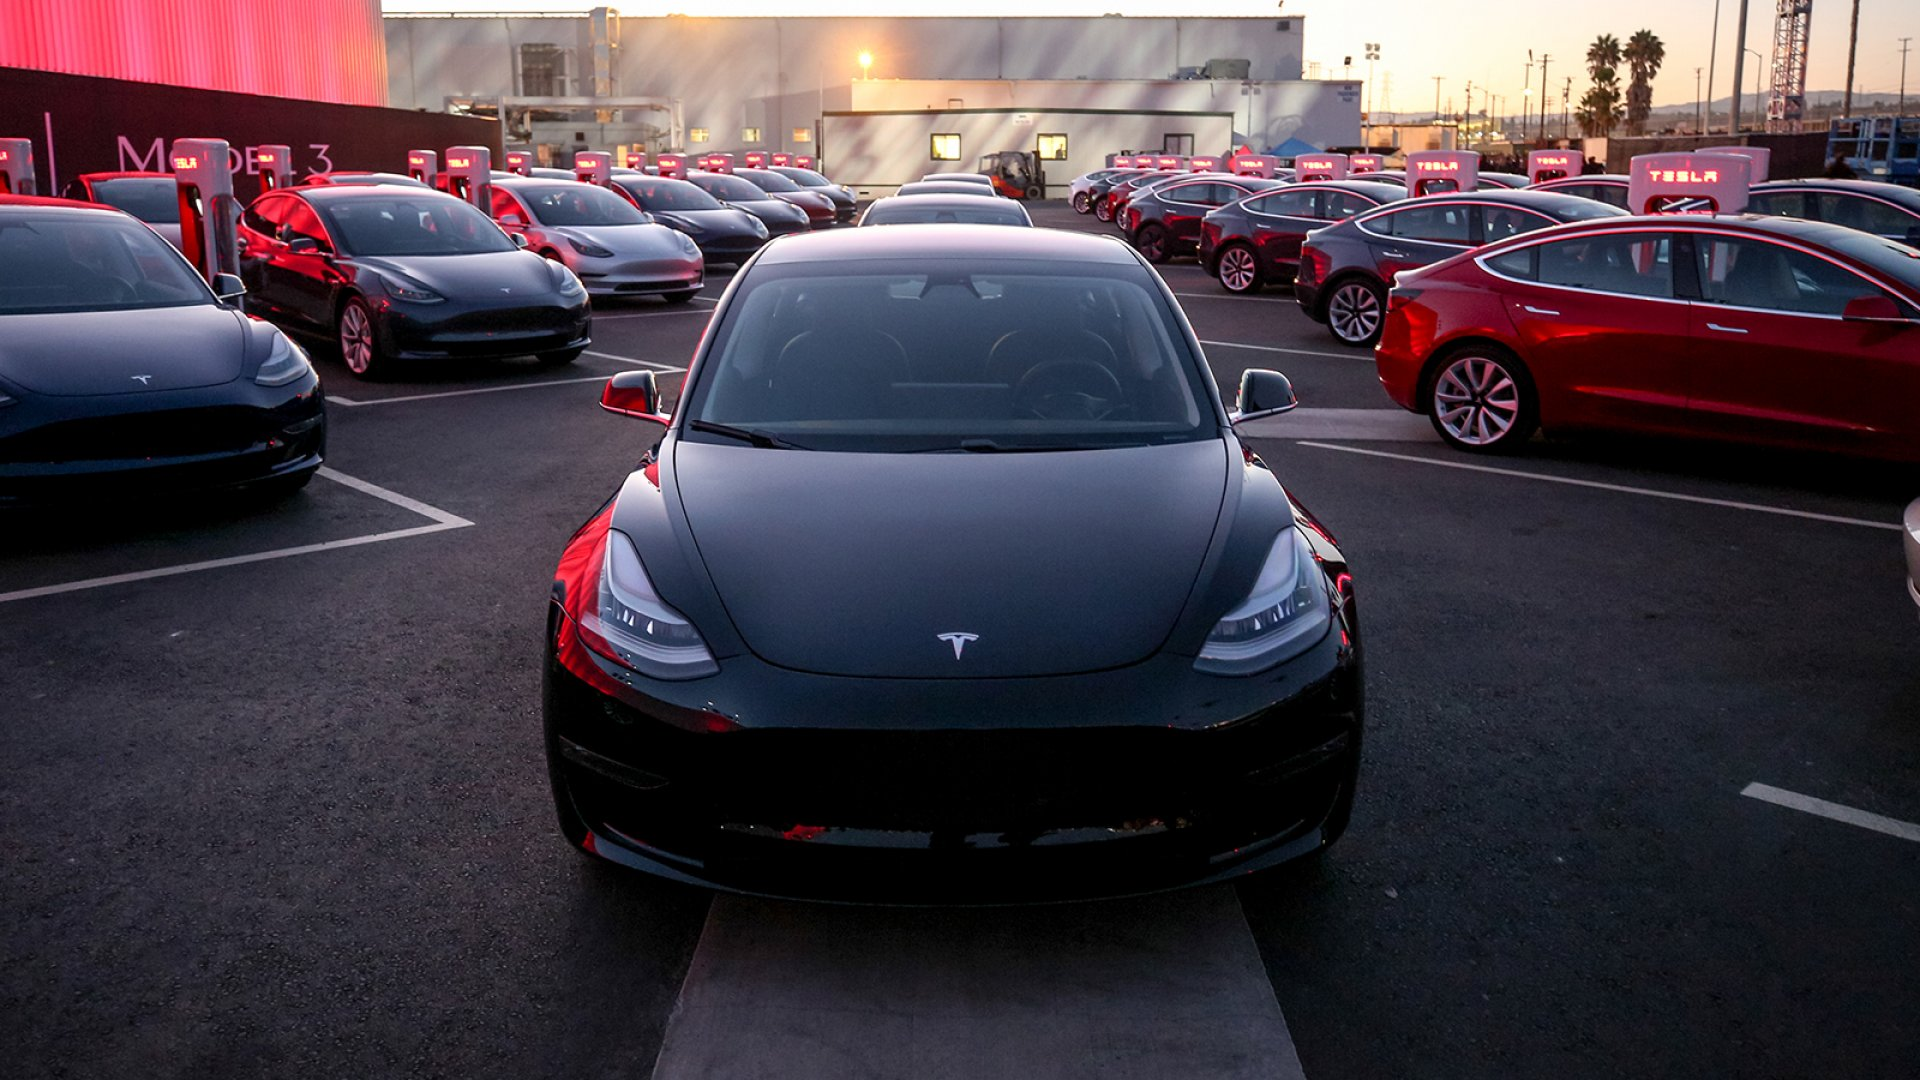 Tesla's Cheaper Model 3 Could Make It Mainstream